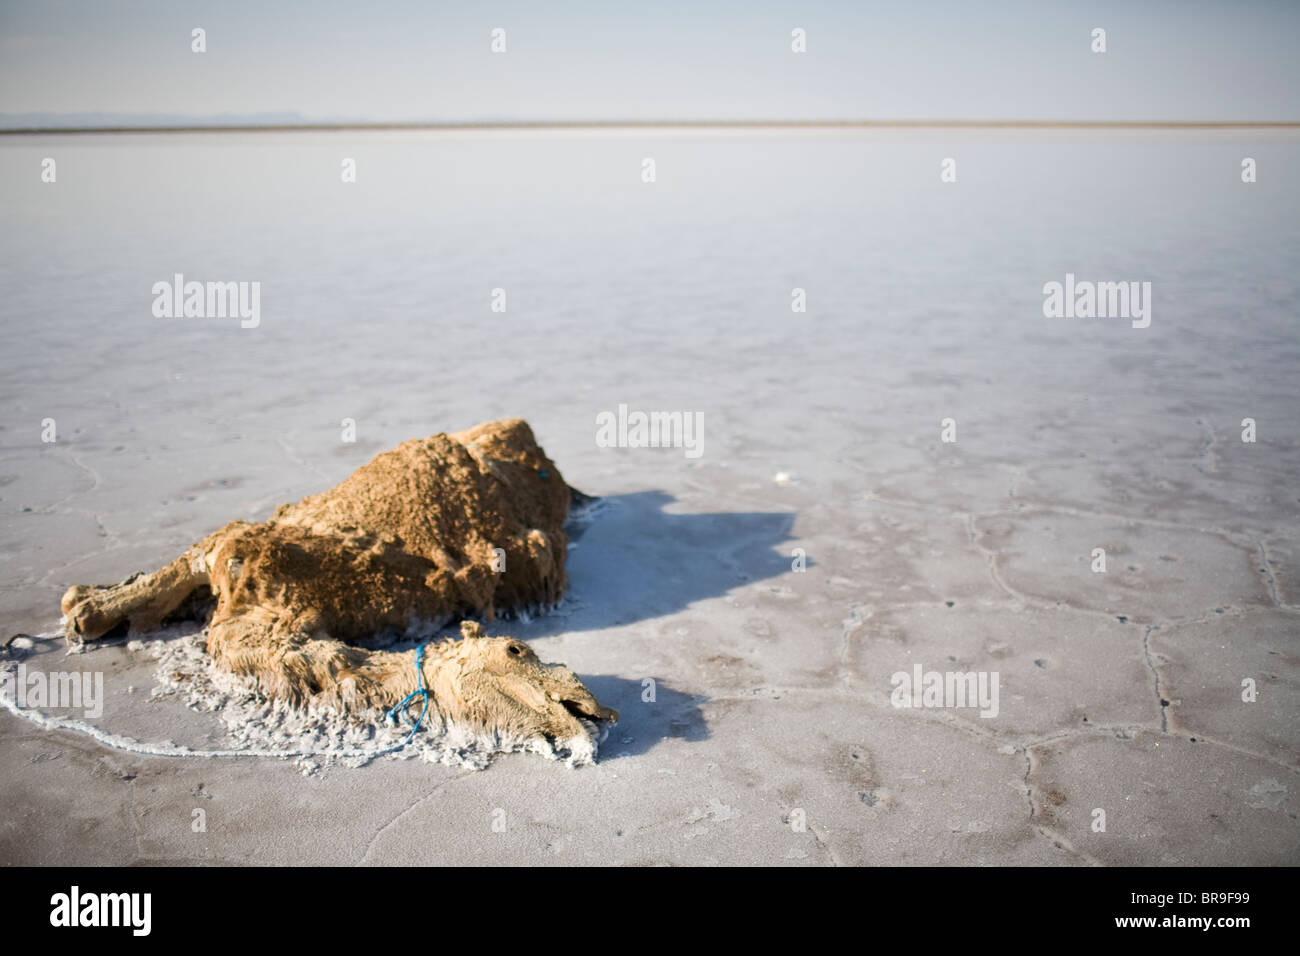 Chameau mort au milieu de Salt Lake près de Khur Iran. Photo Stock